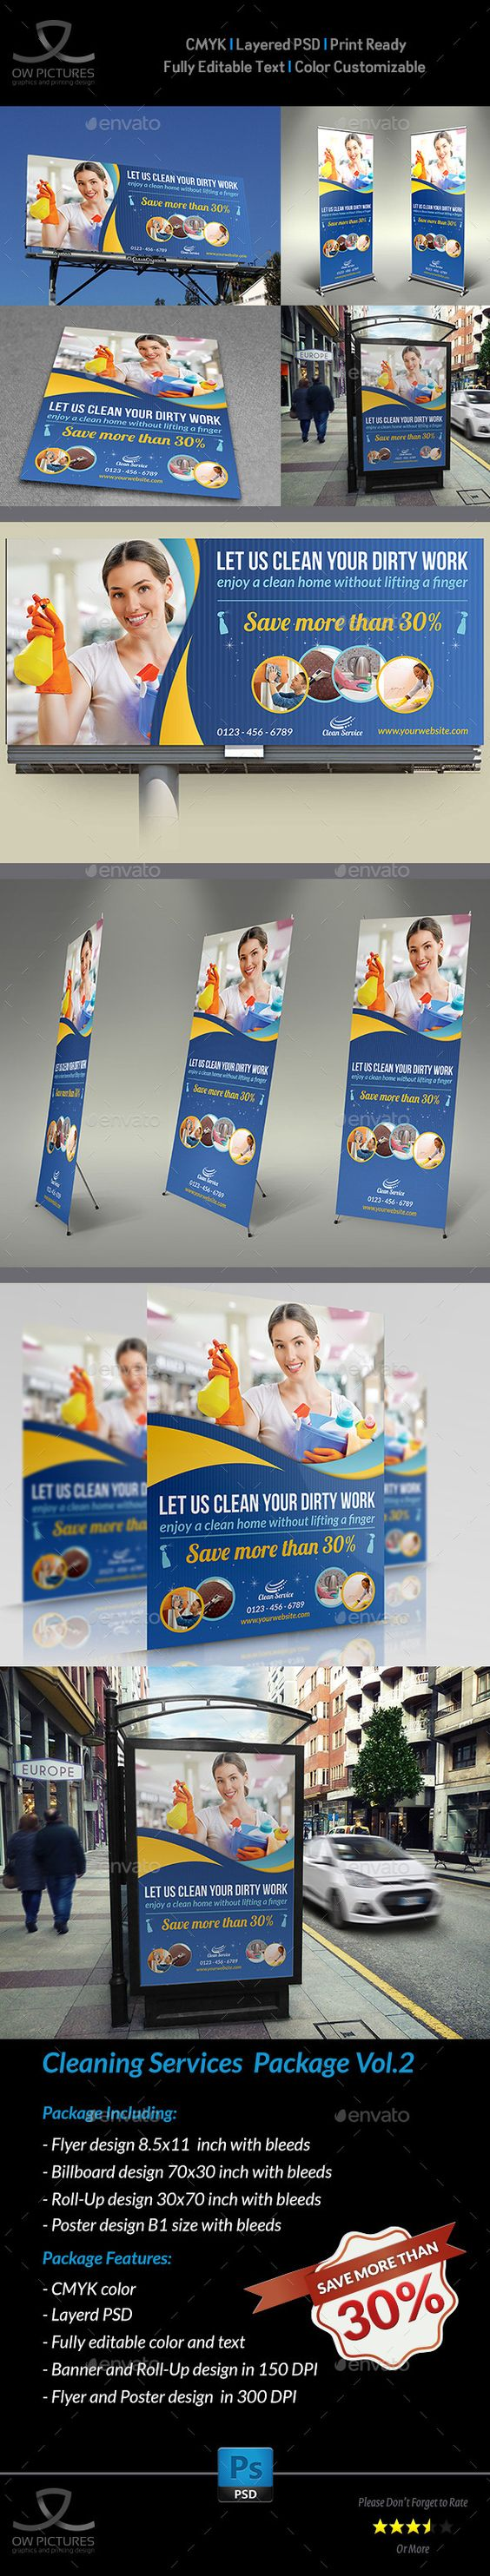 cleaning services advertising bundle vol cleaning advertising cleaning services advertising bundle vol 2